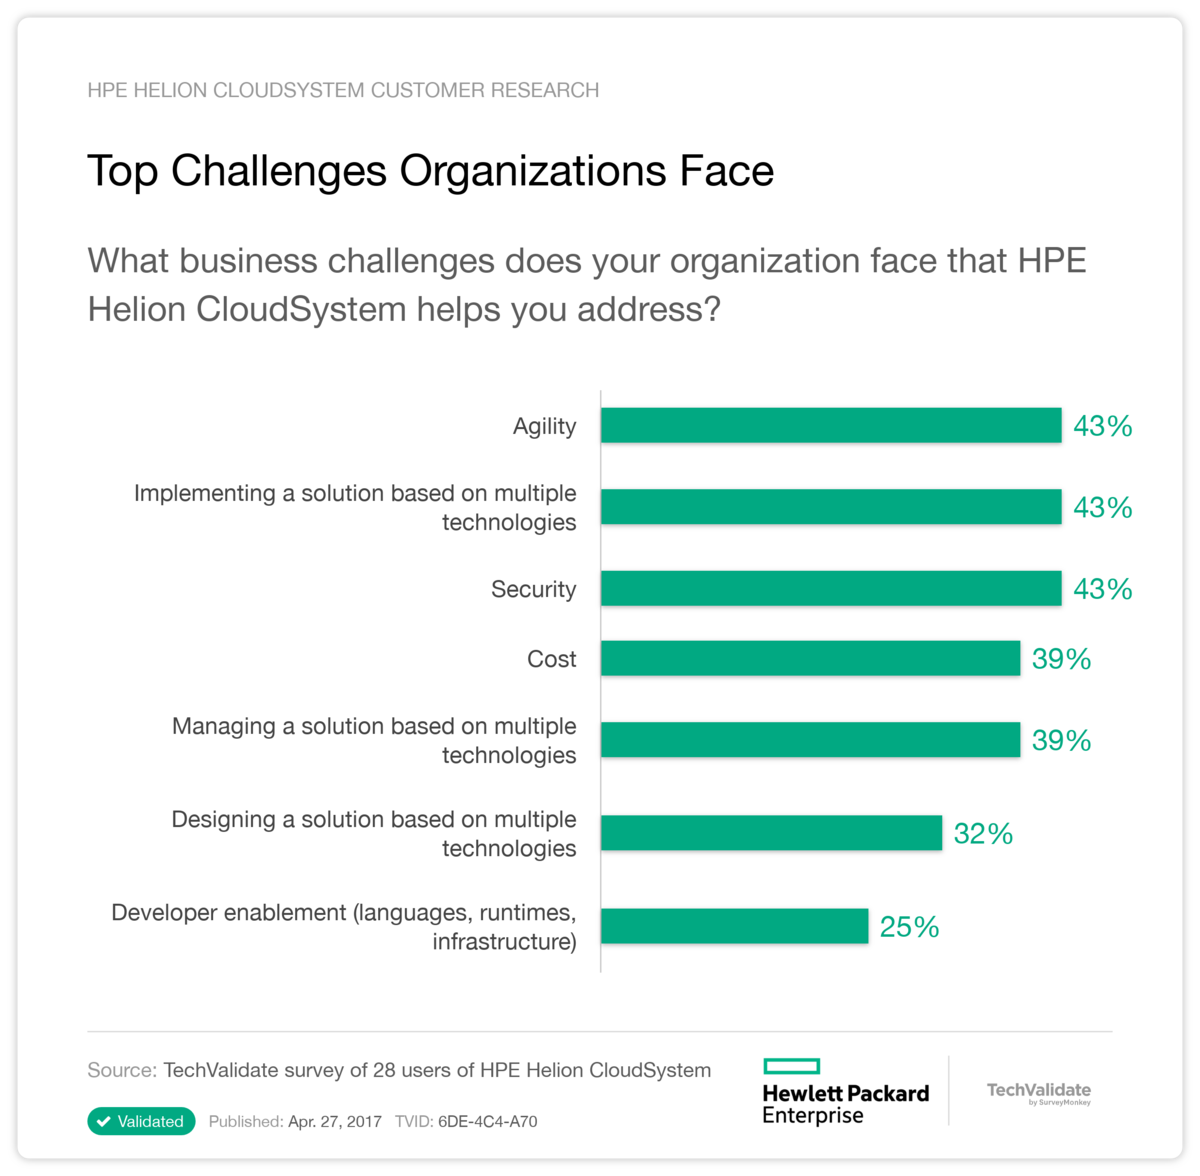 Top Challenges Organizations Face